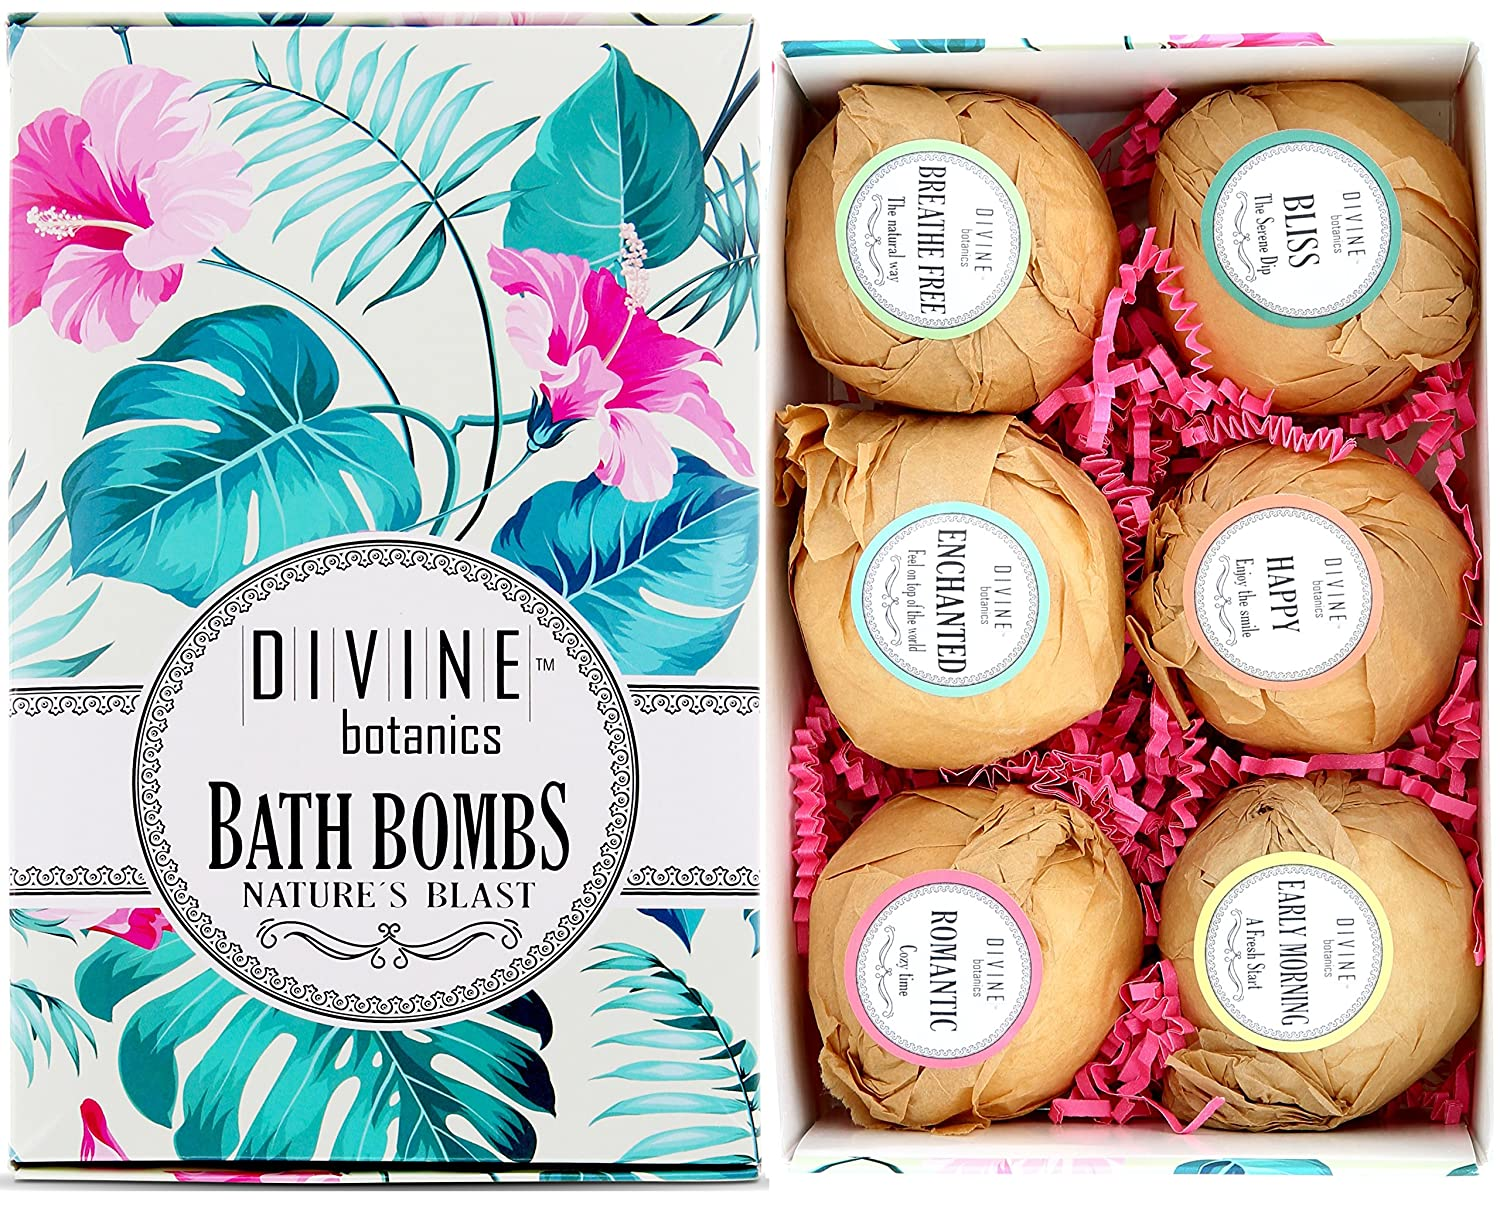 6 XL USA Made Lush Bath Bombs Kit - Organic Coconut oil and Shea Butter - Mothers Day Gift For Women - Bath Fizzies - Best Gift Ideas and Gift Sets - Use with Bath Bubbles Basket Bath Beads Silk Rootz Enterprises NA